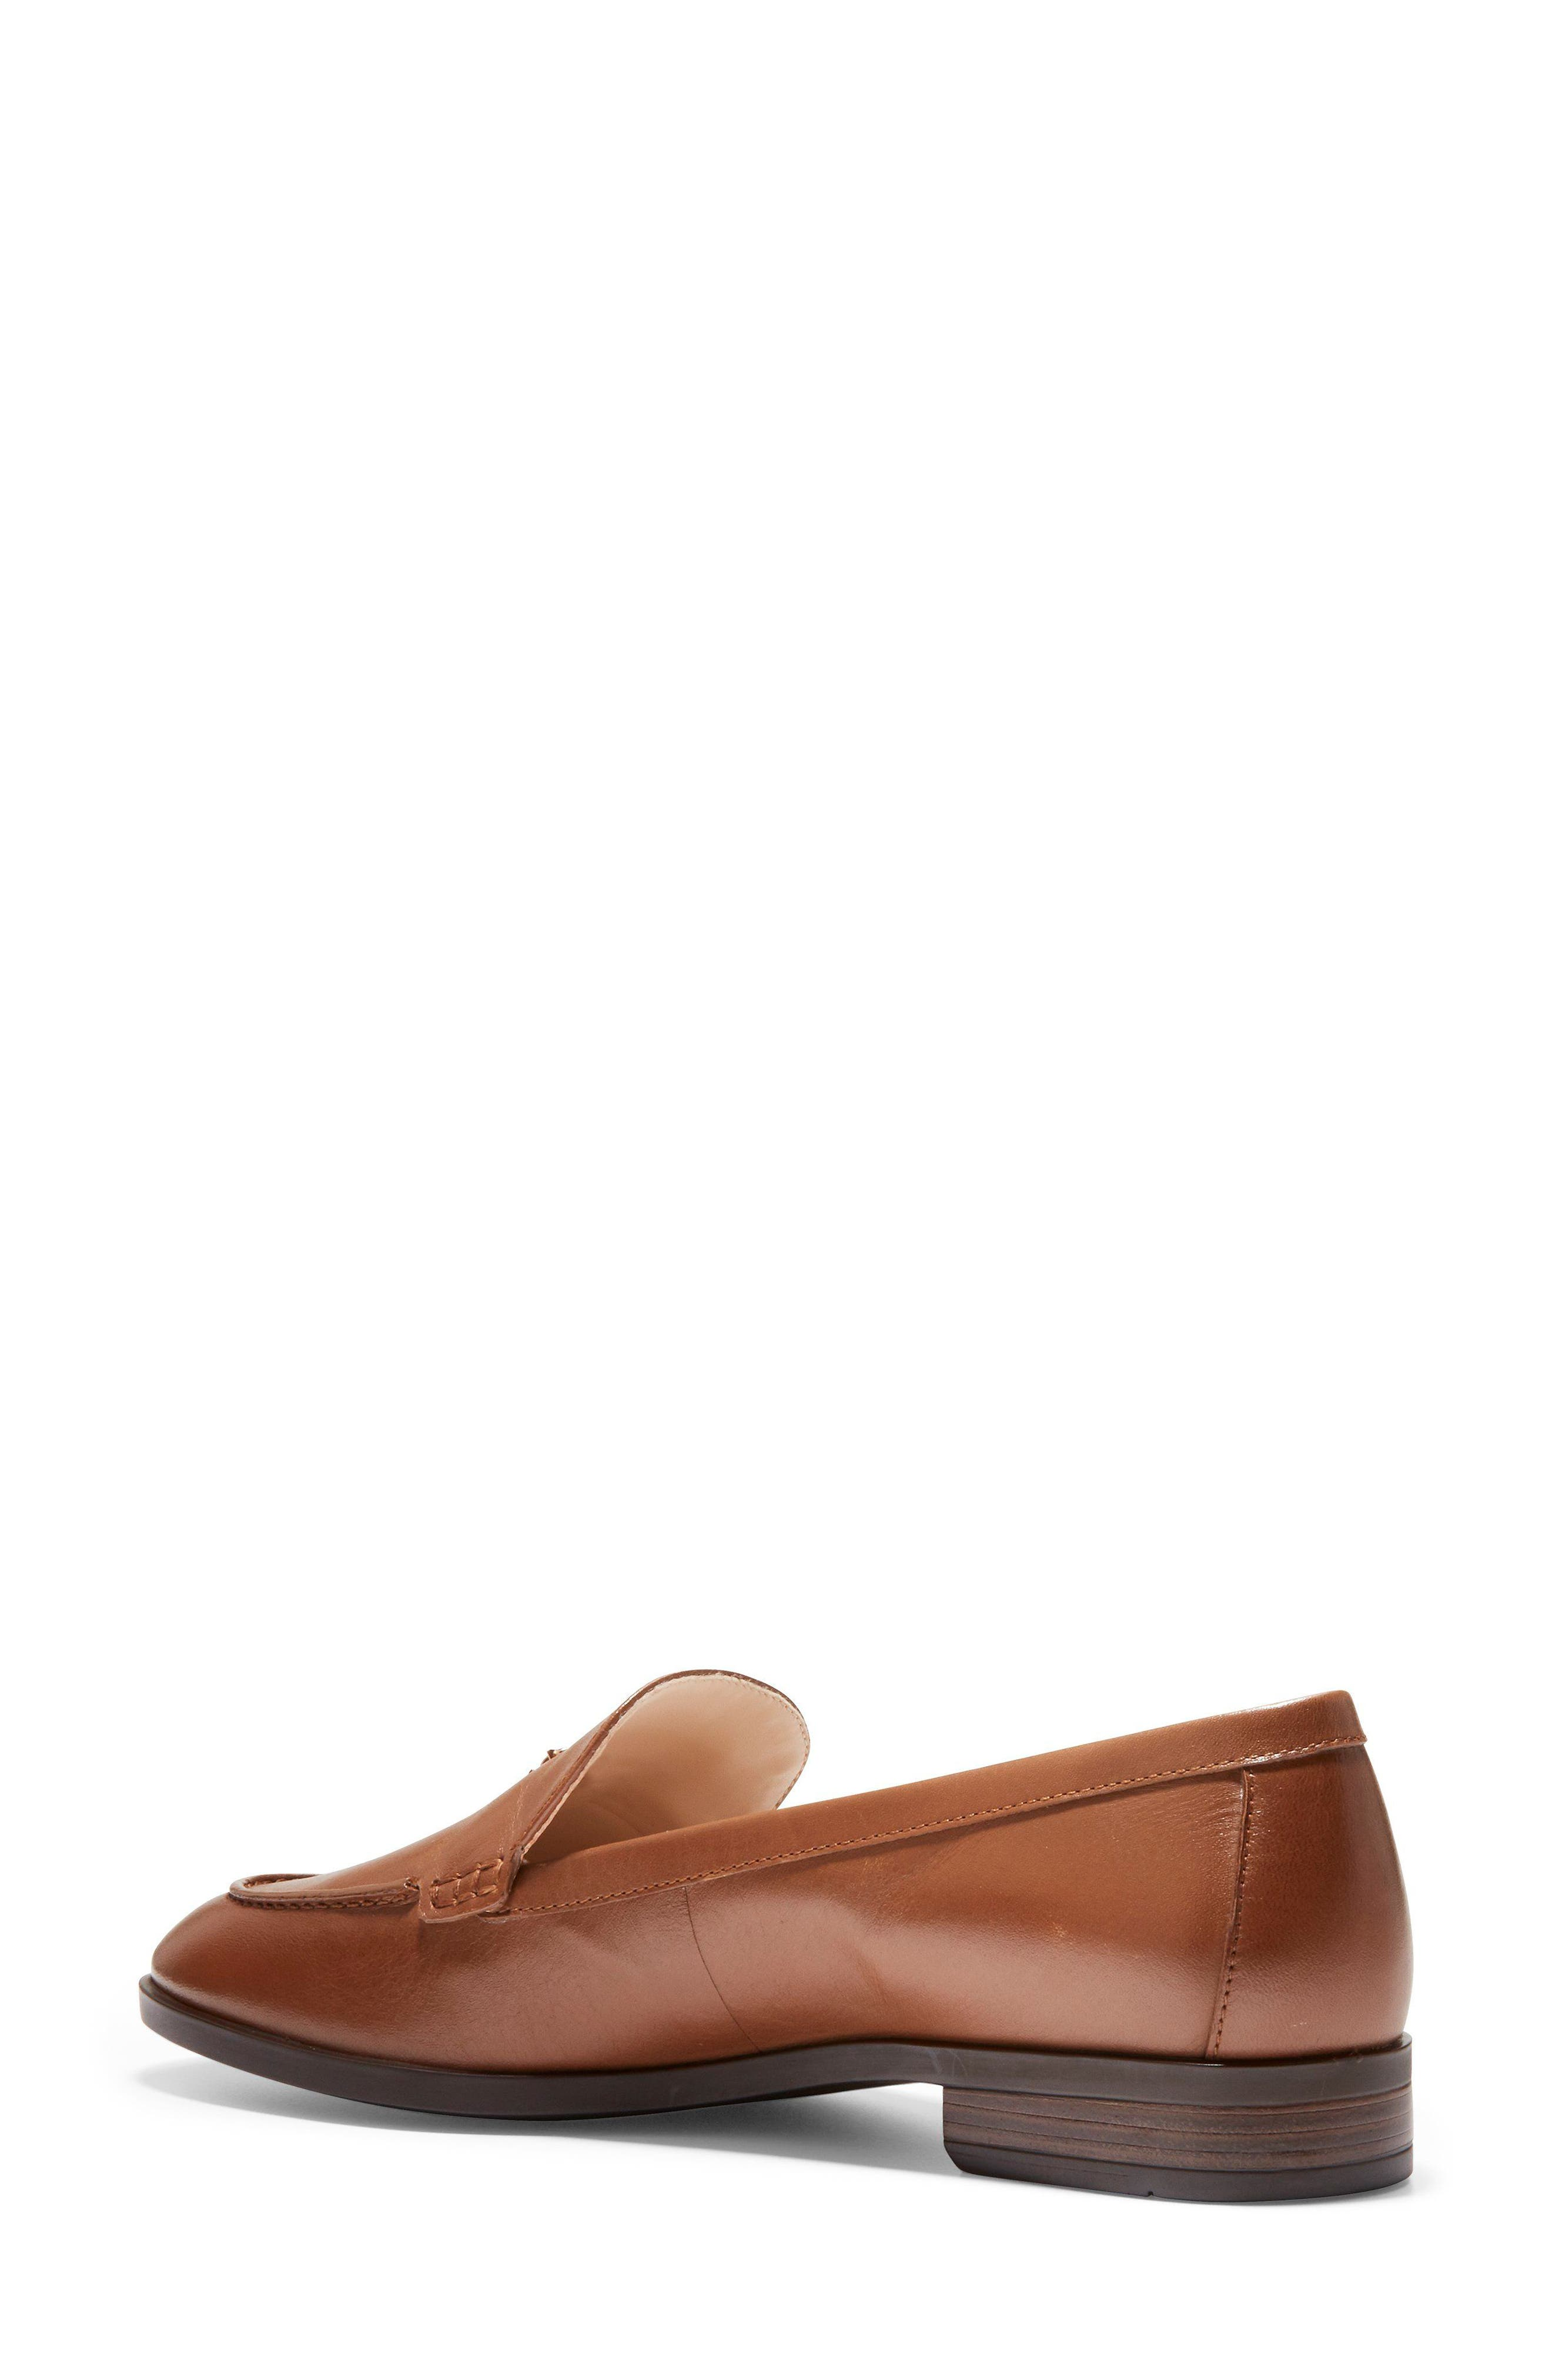 Pinch Lobster Loafer,                             Alternate thumbnail 8, color,